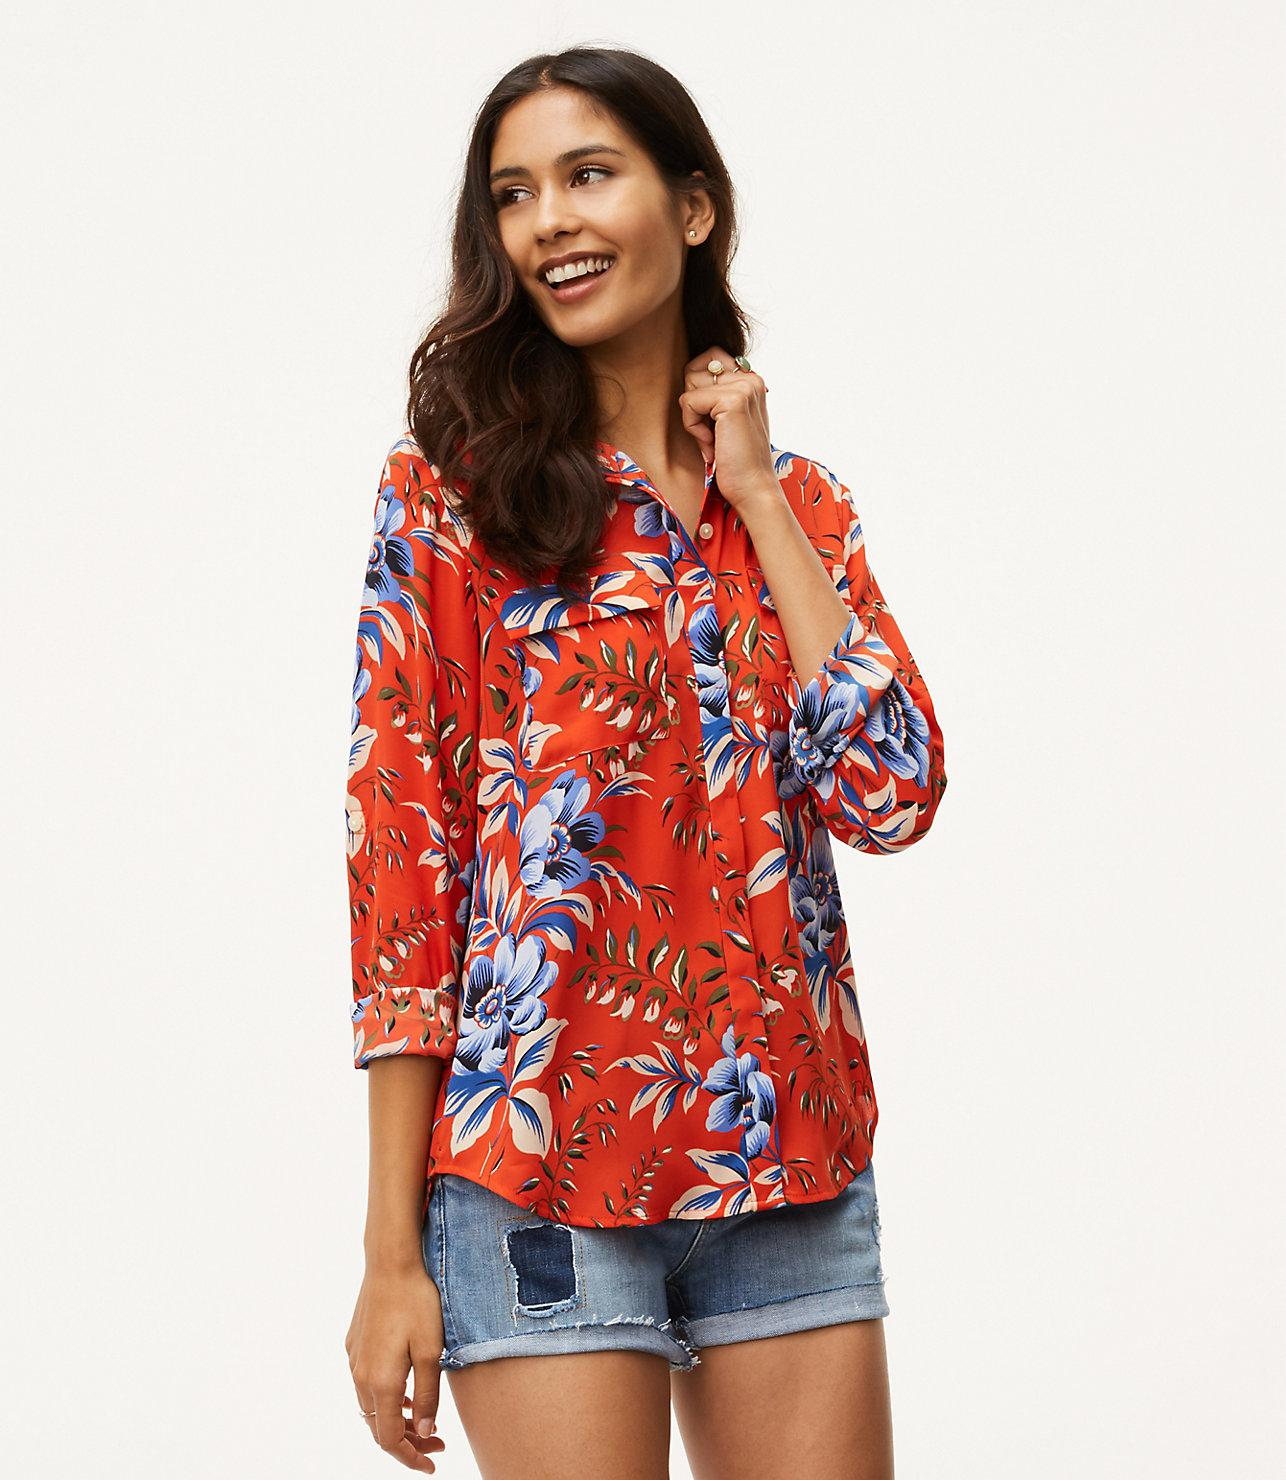 517f8db517f2b8 Utility Blouse - Catalyst PSM